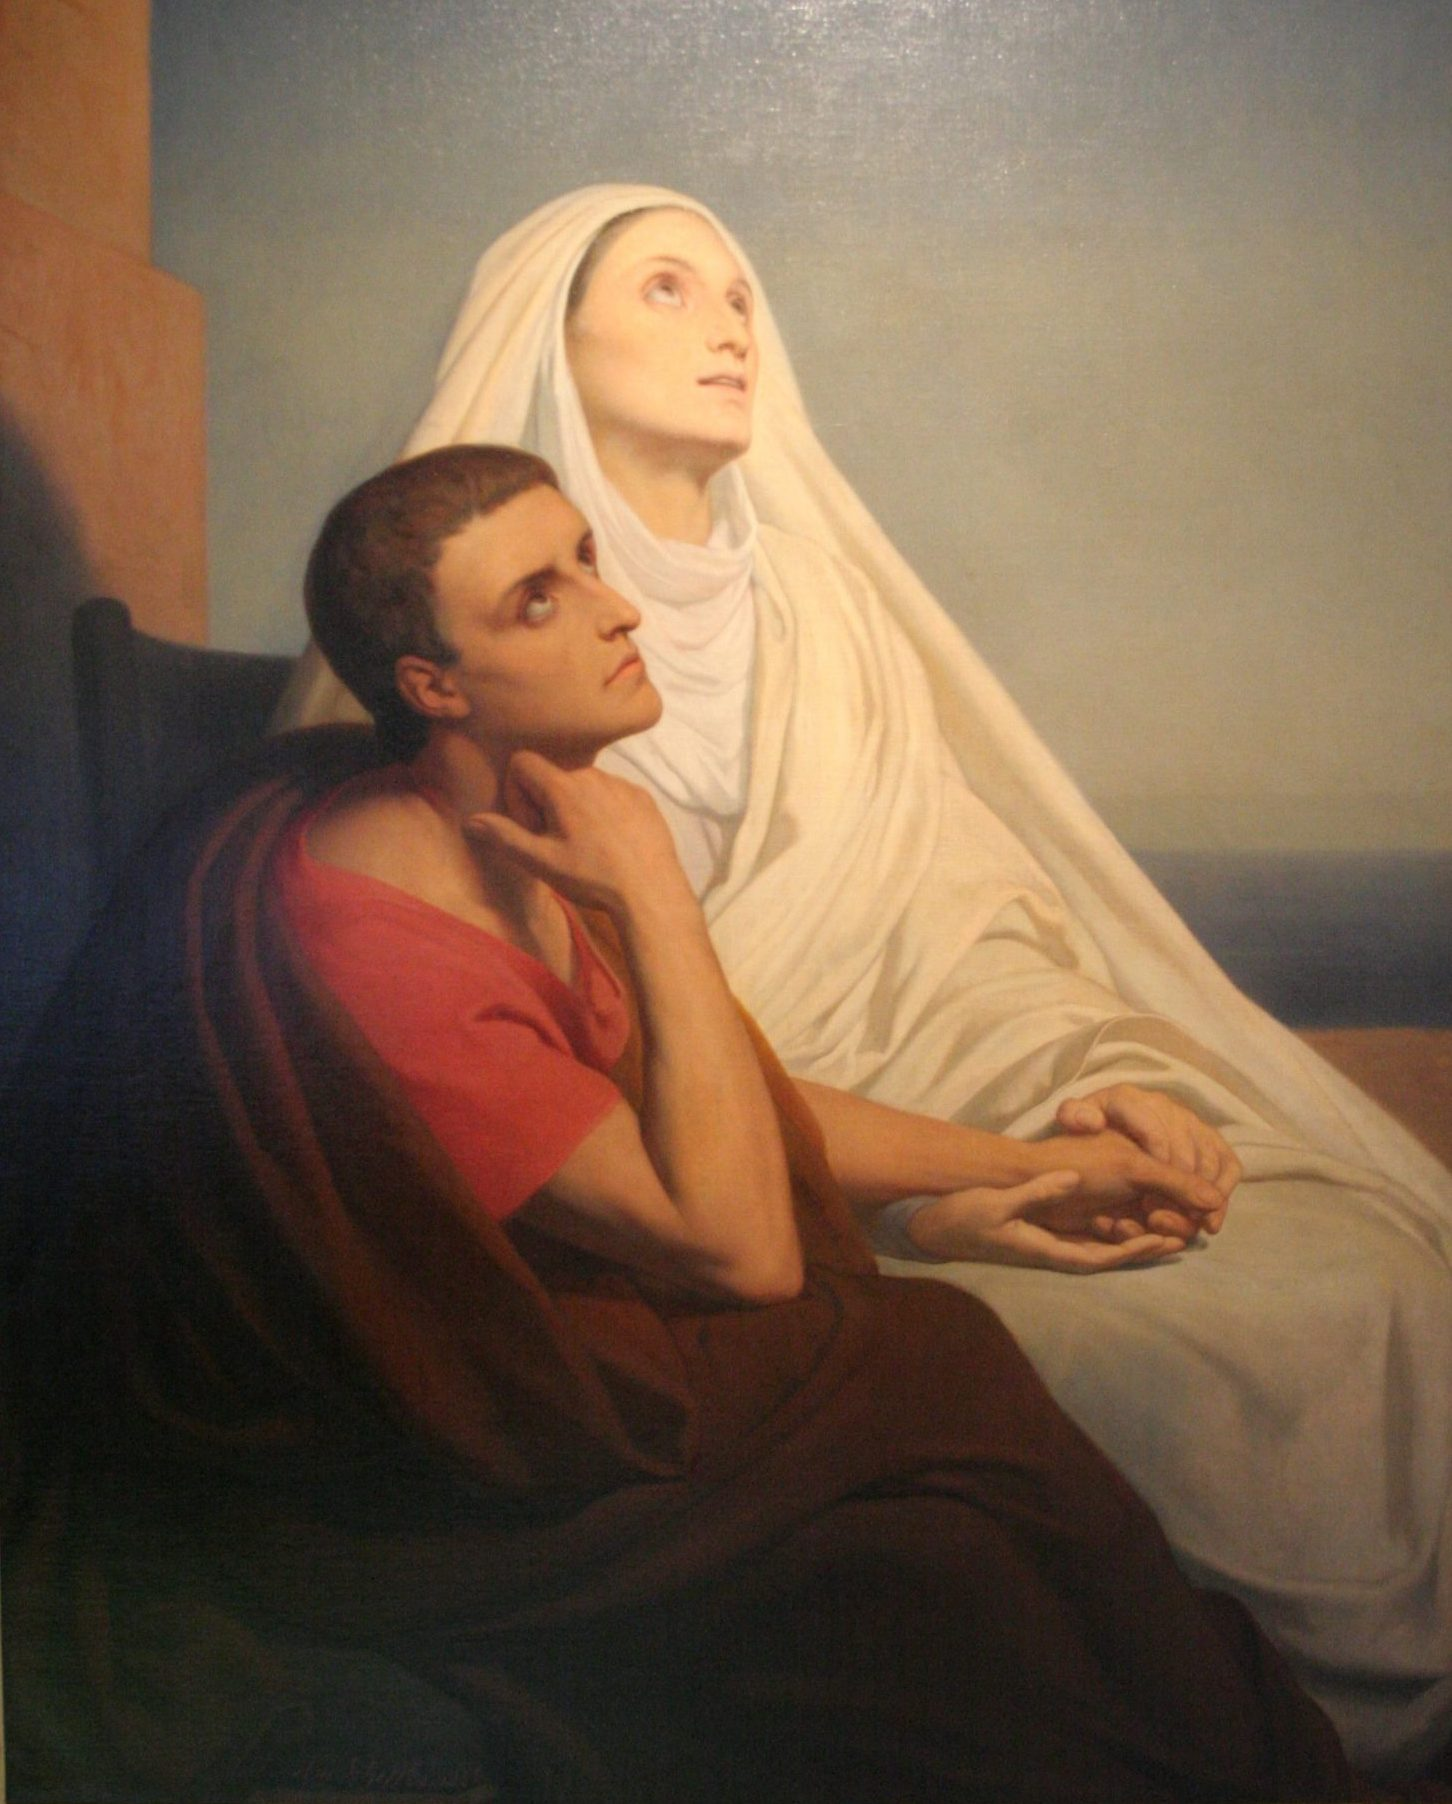 Augustine of Hippo and his mother Saint Monica by Ary Scheffer (1795-1858) From WikiCommons